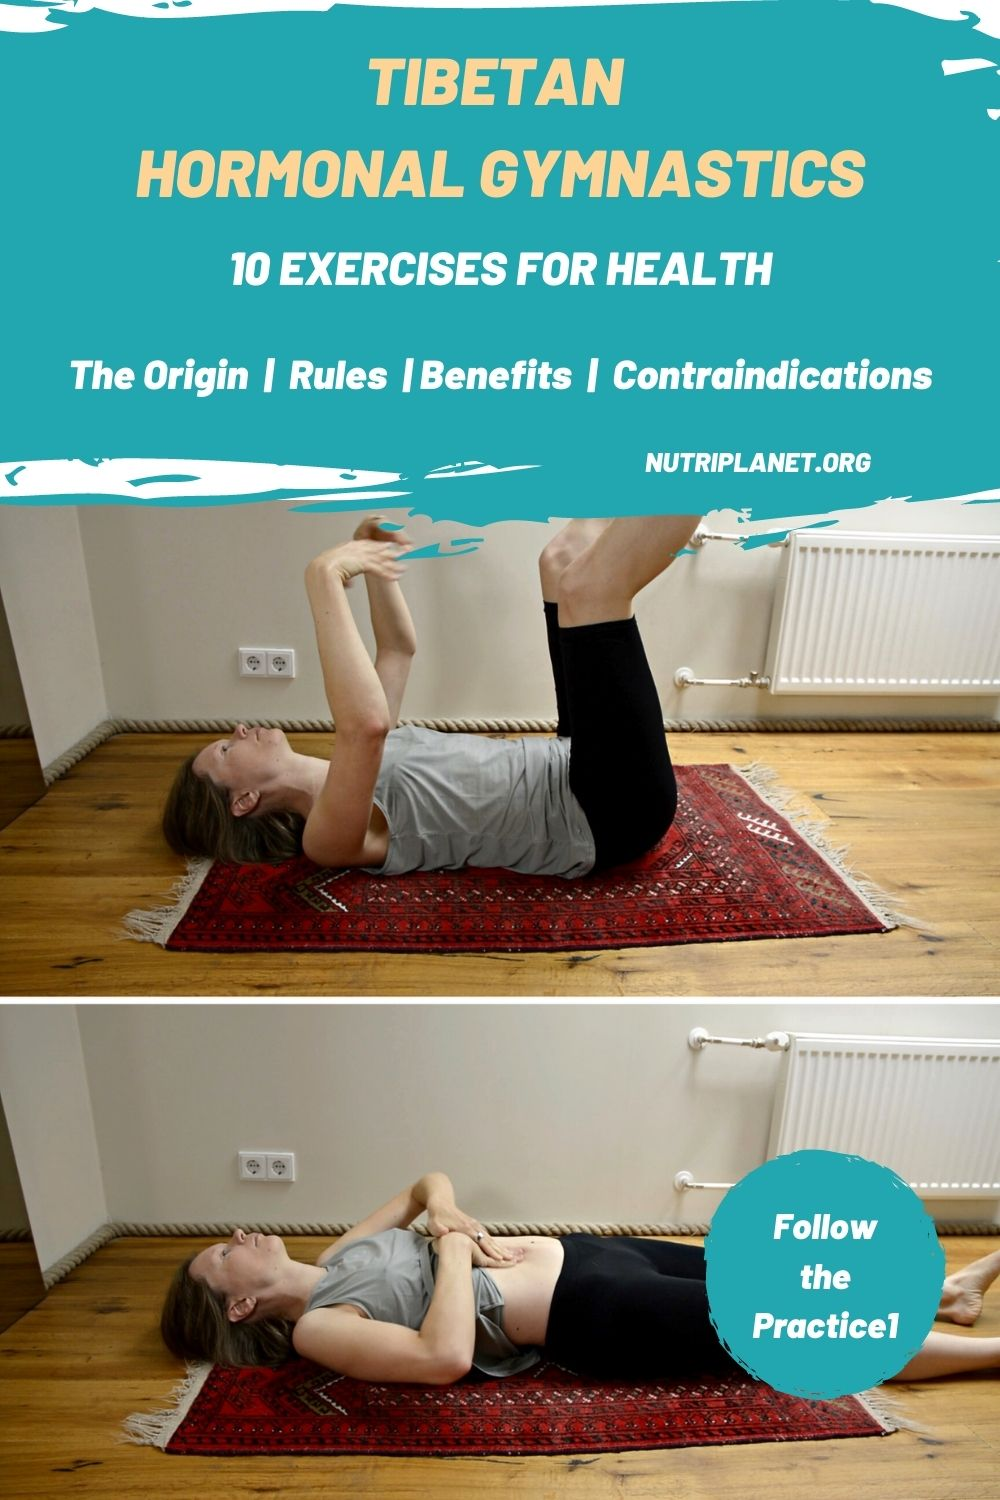 Learn how to do the Tibetan hormonal gymnastics, the full sequence of 10 exercises. You'll also read about its origin, benefits, rules, and contraindications.